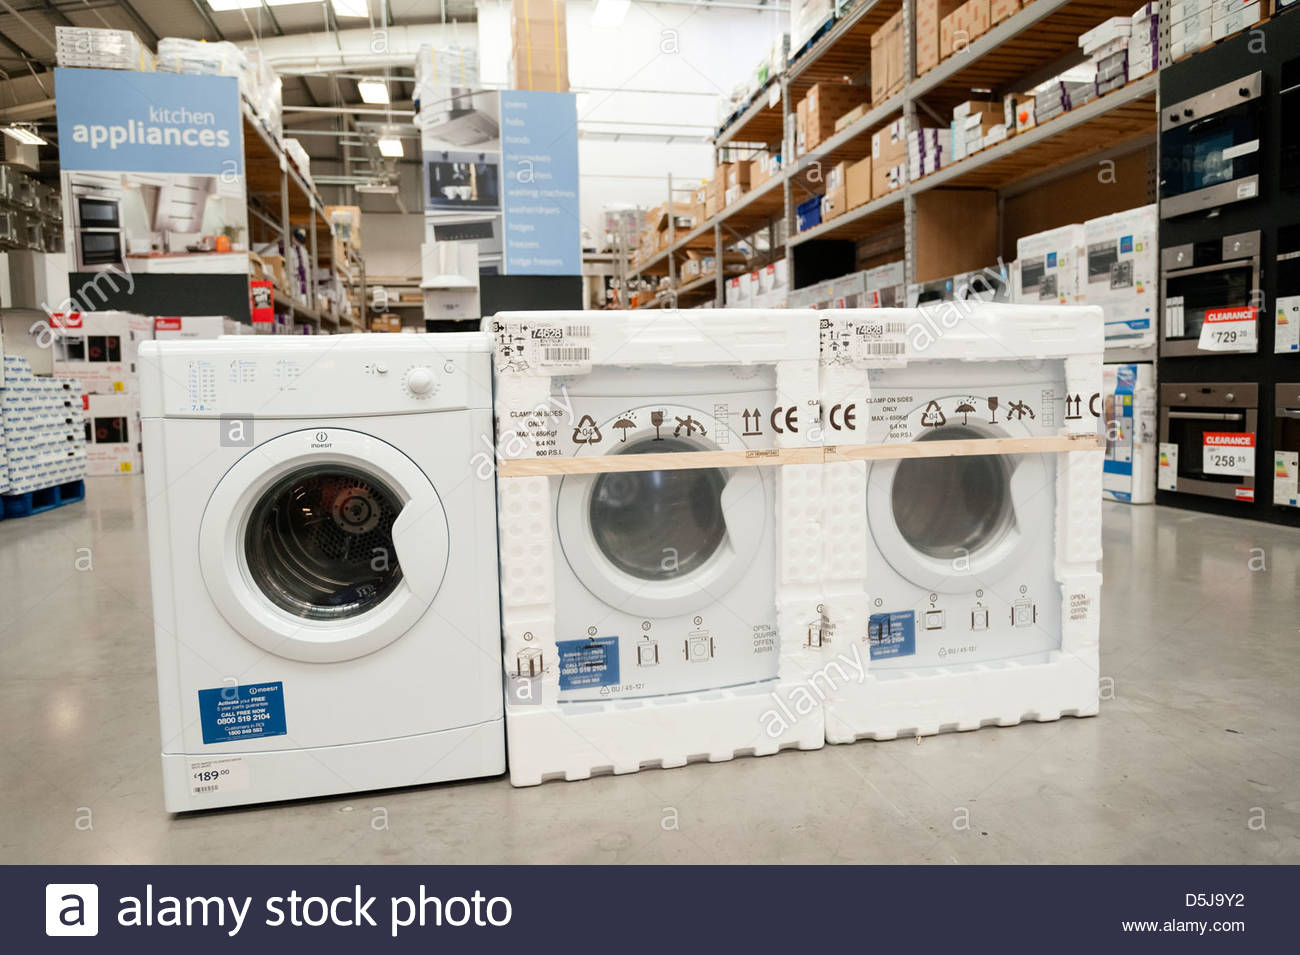 kitchen appliances for sale amazon faucets inside a b andq store new